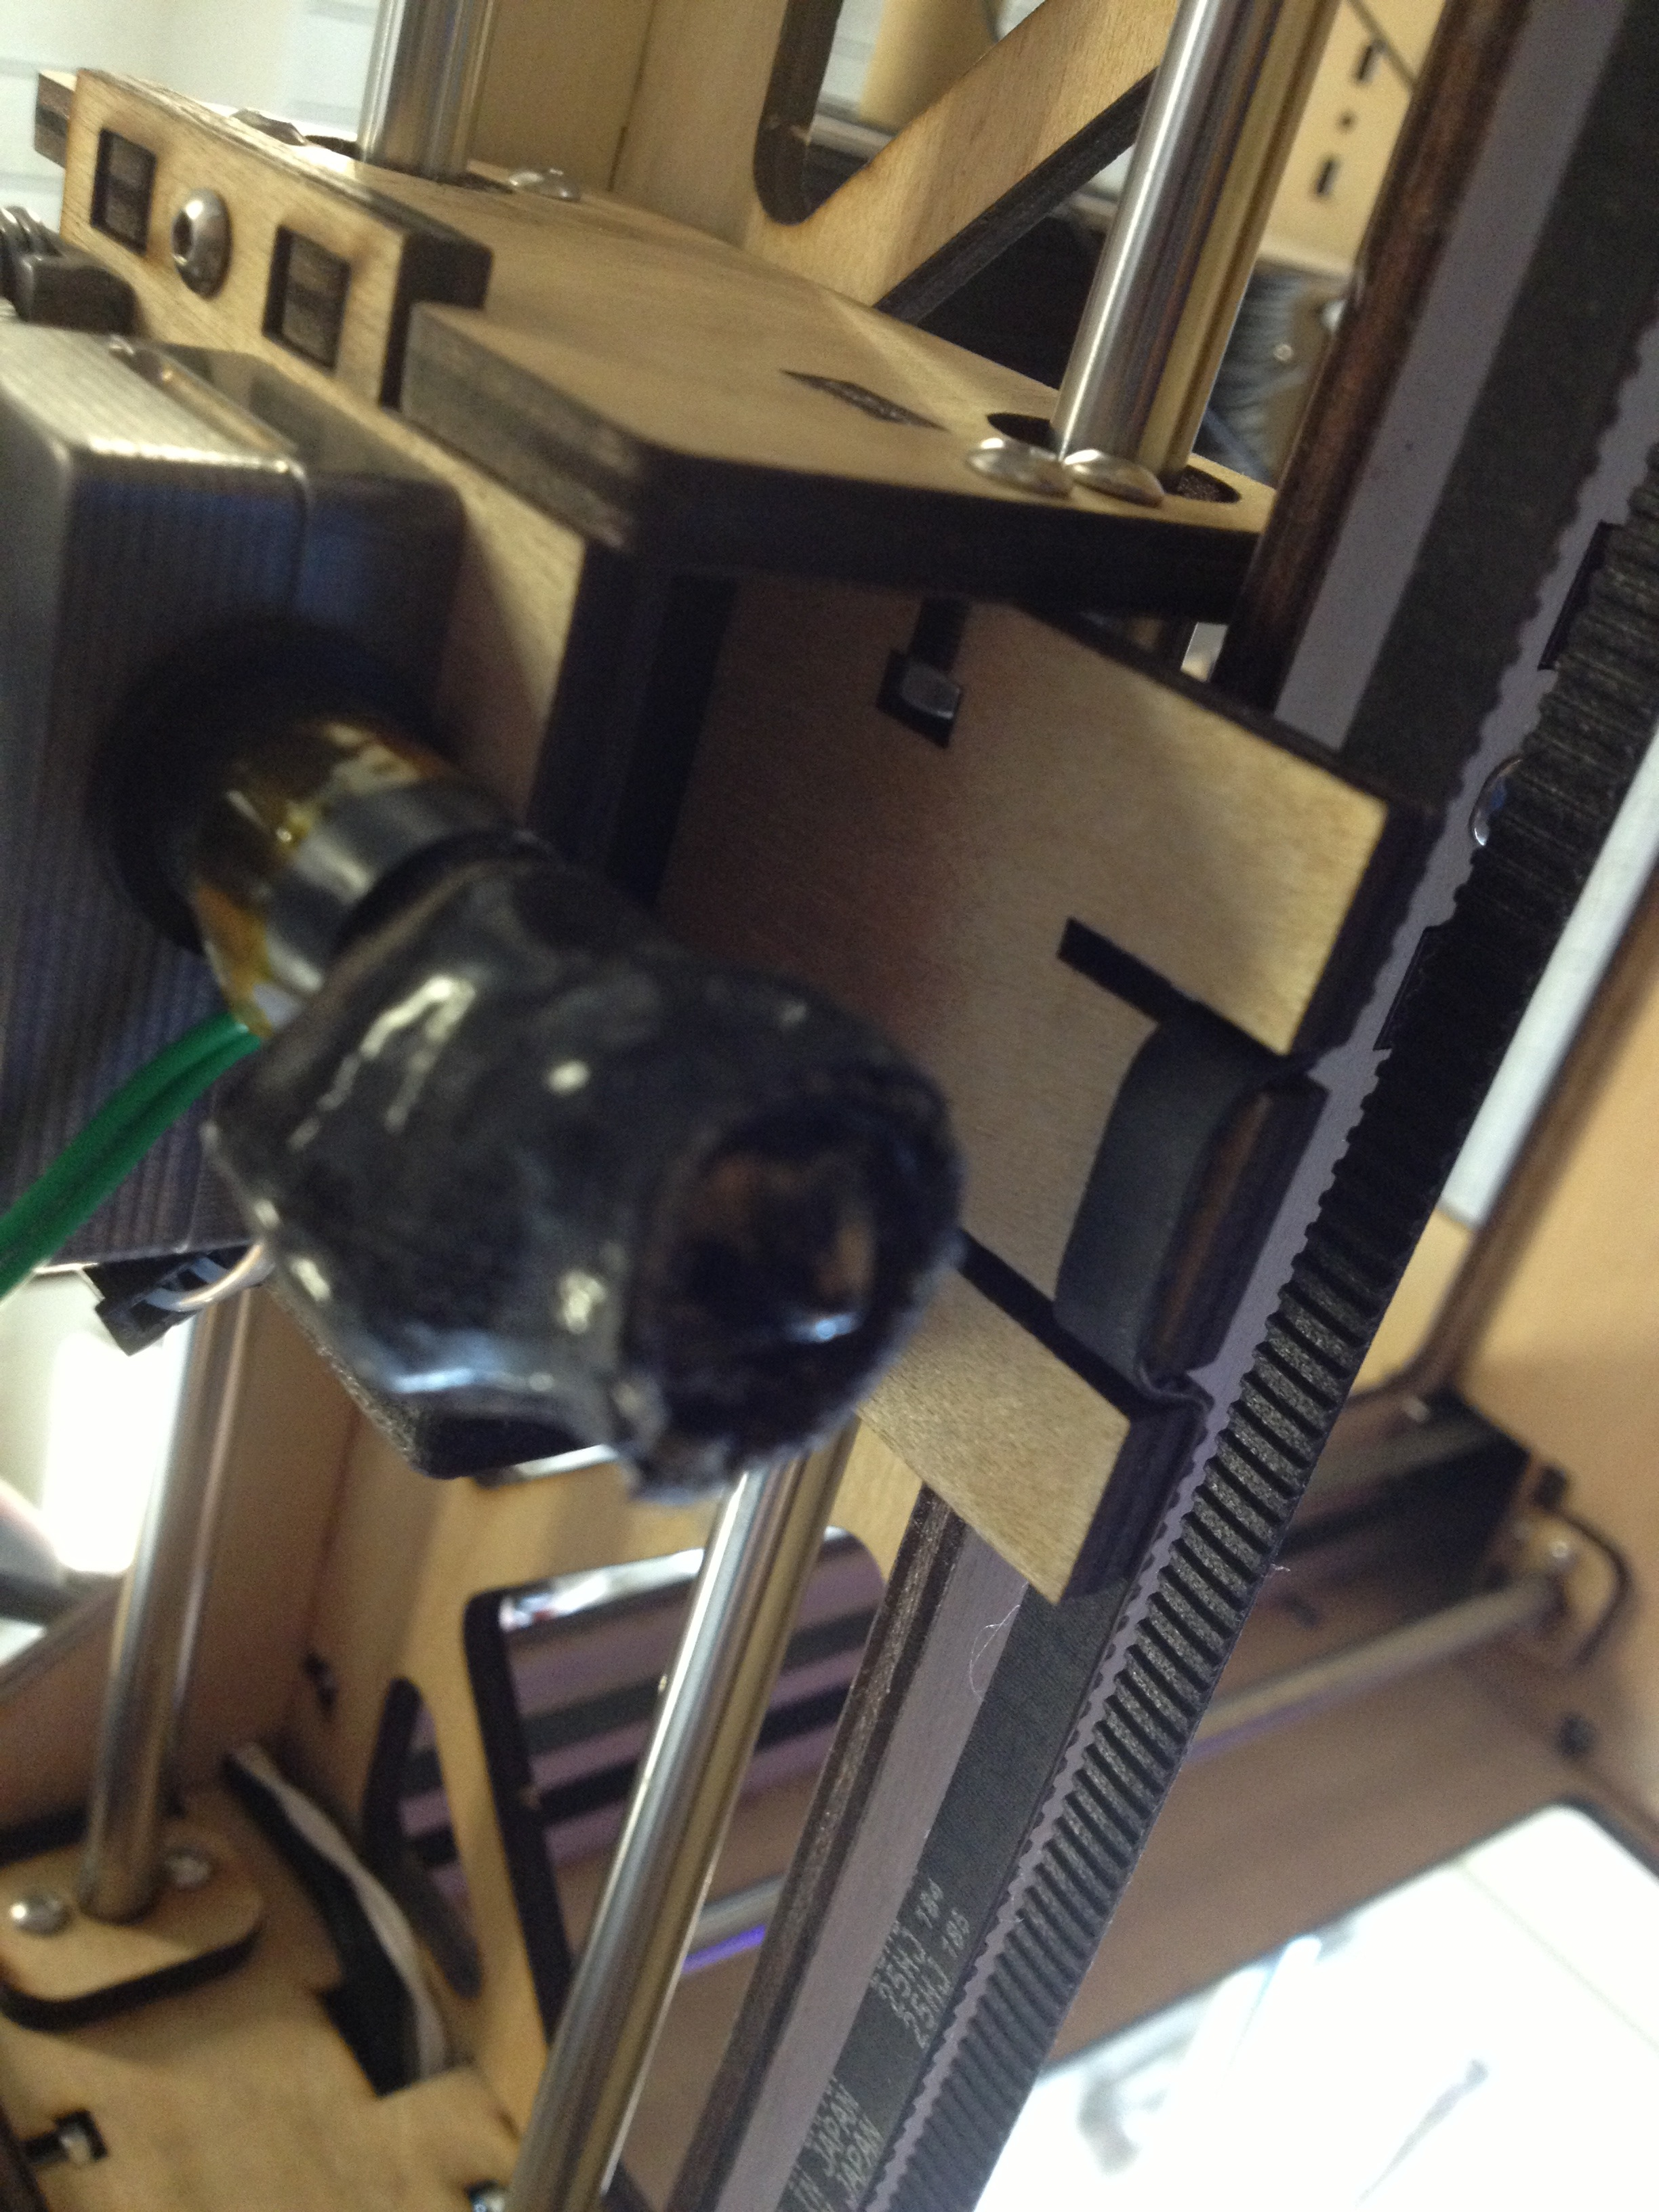 Picture of Cleaning the Nozzle - Getting Rid of Leftover PLA